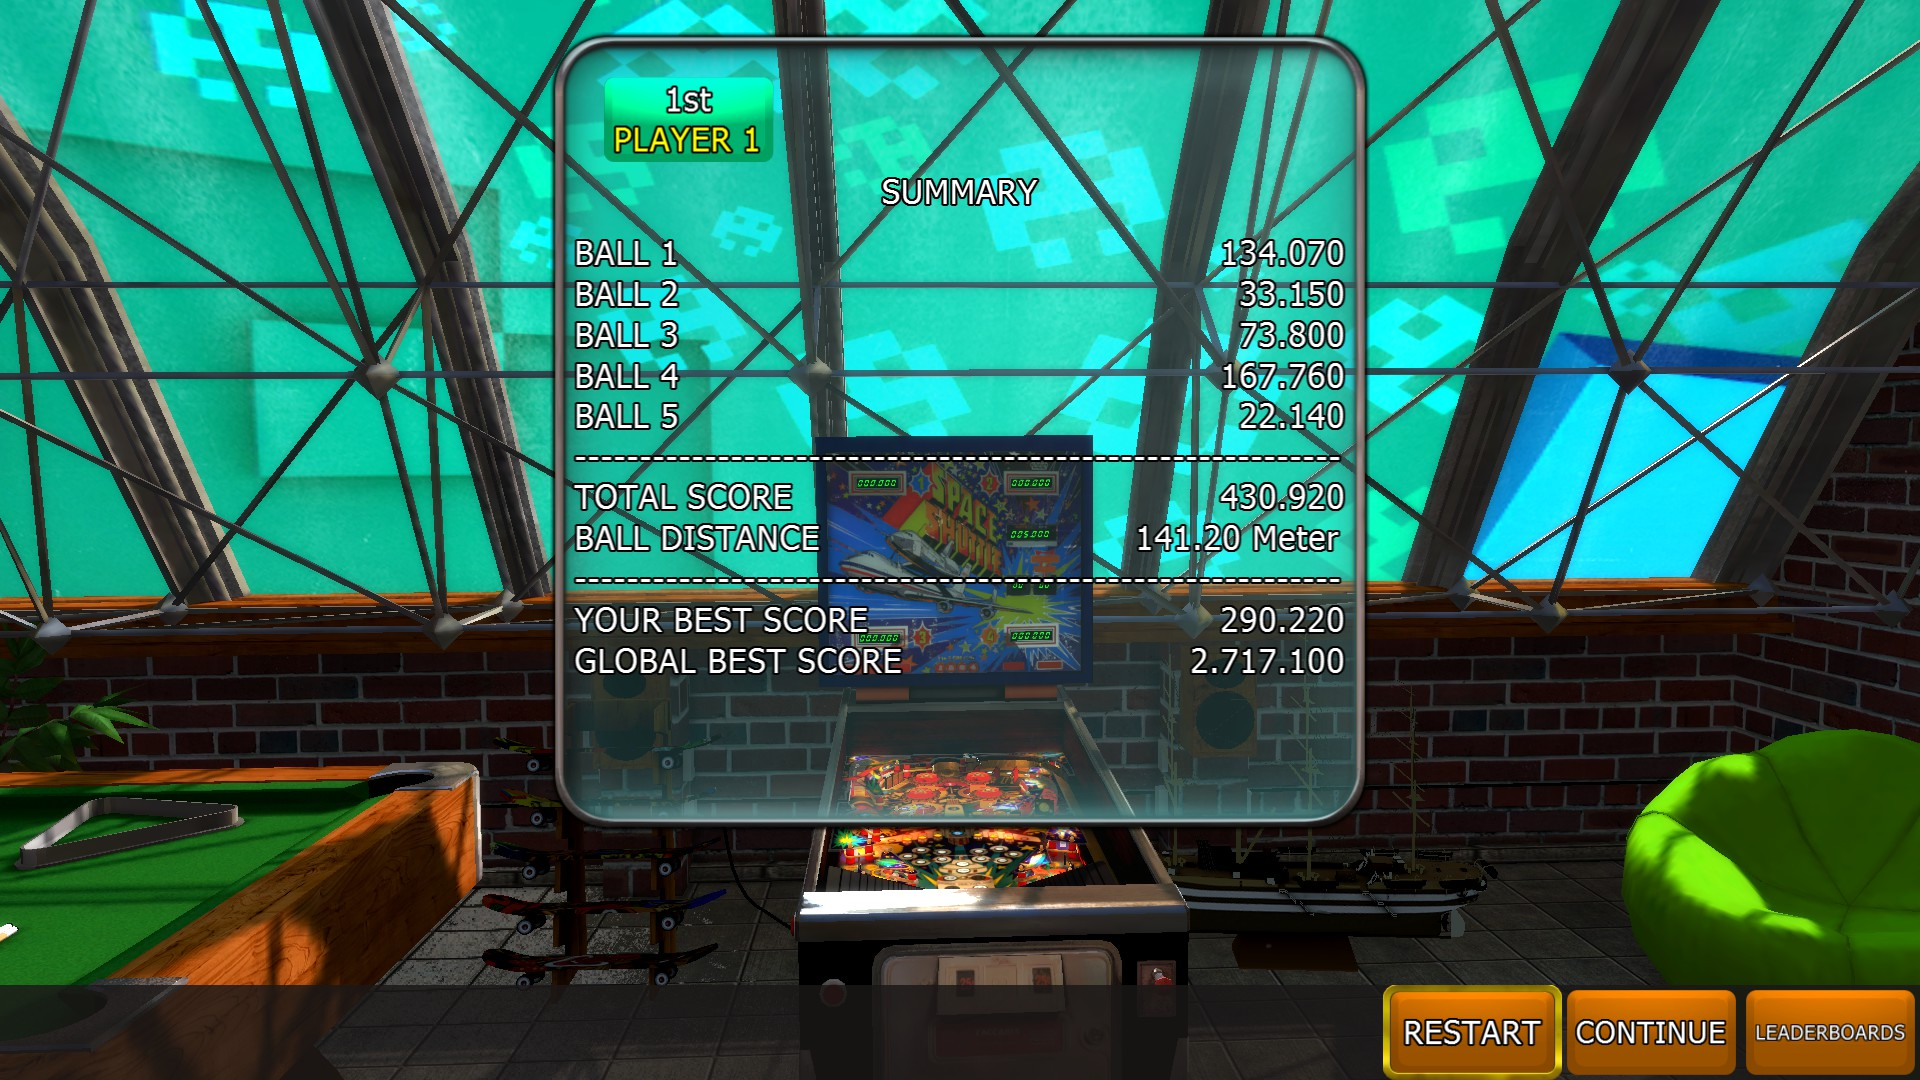 Mantalow: Zaccaria Pinball: Space Shuttle [5 balls] (PC) 430,920 points on 2018-04-18 01:52:52